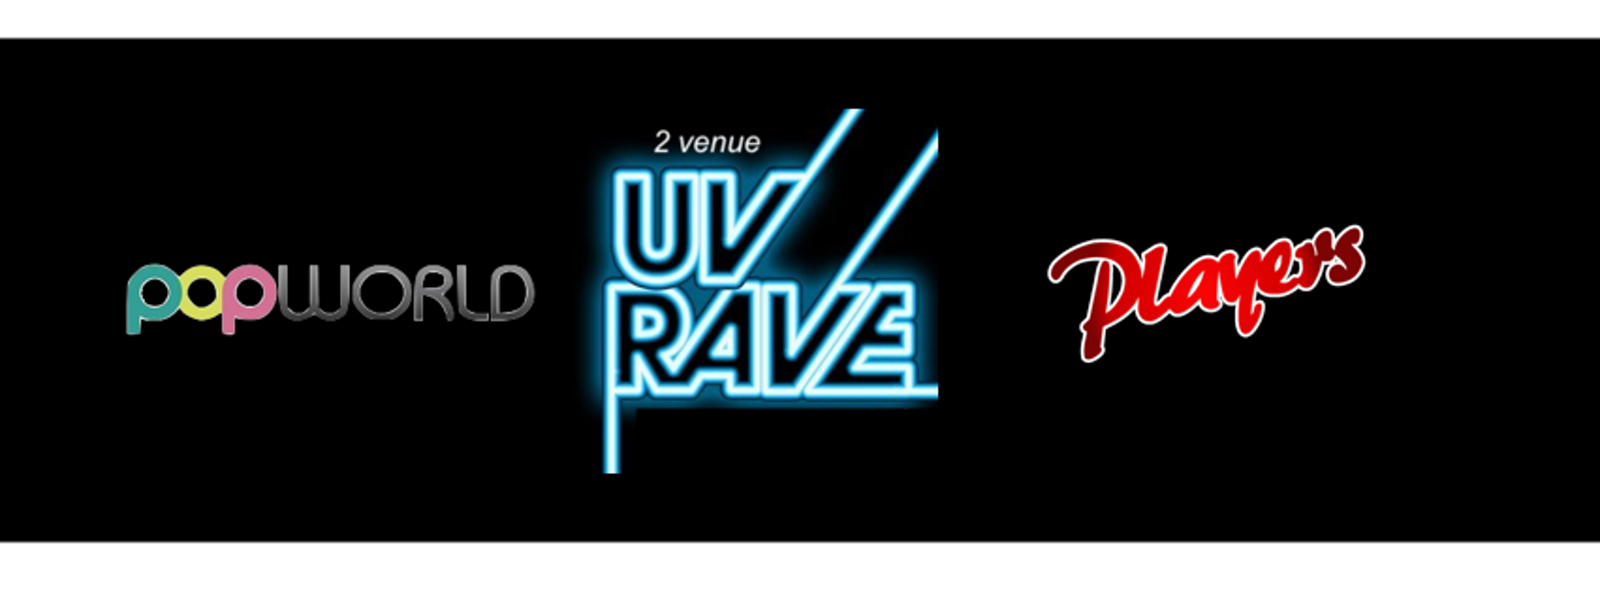 2 VENUE FRESHERS UV RAVE – Popworld And Players!